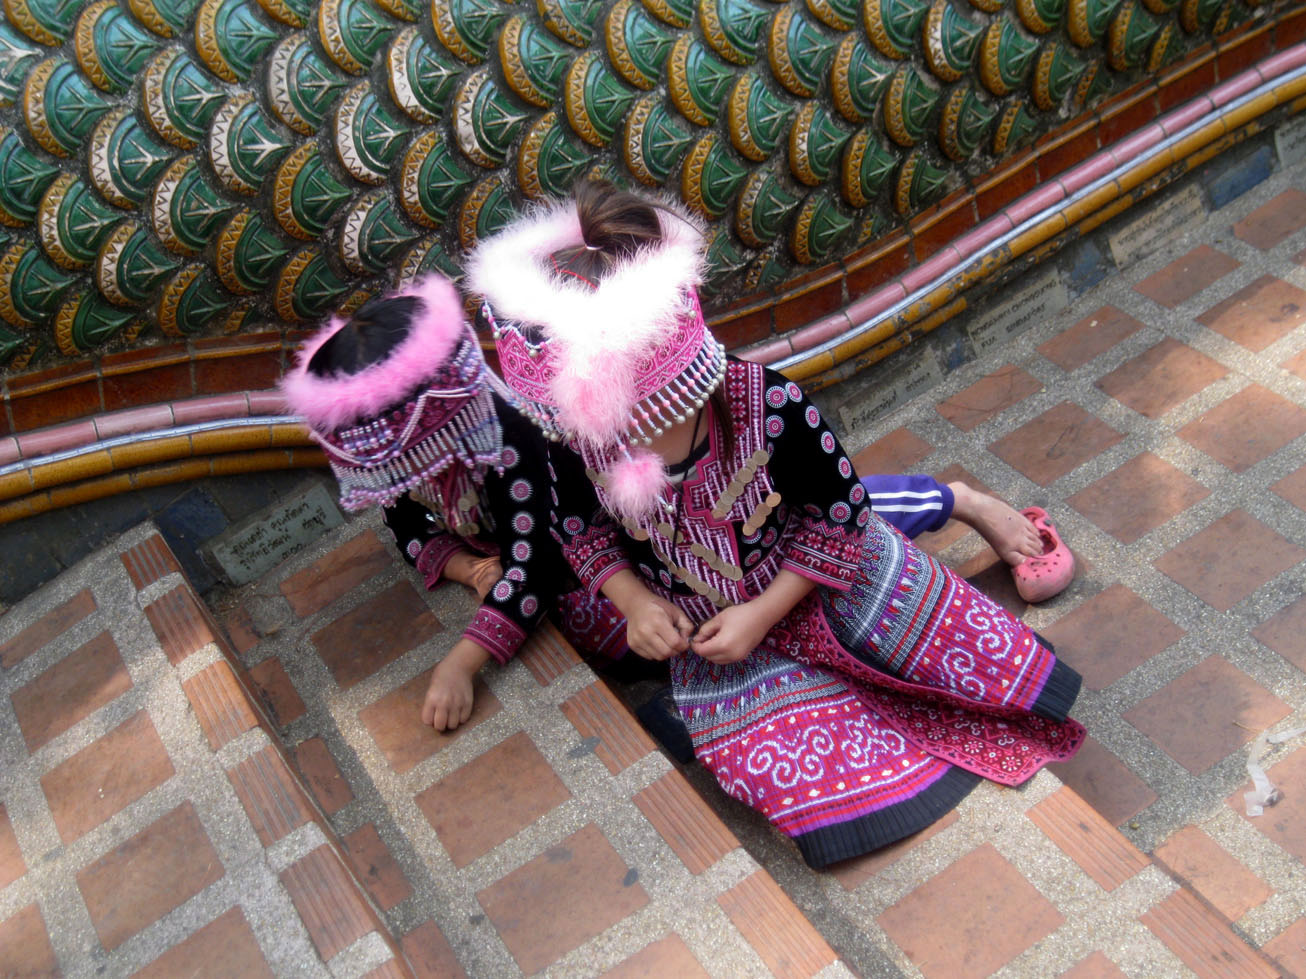 Local kids wearing traditional costumes in Wat Phra That Doi Suthep